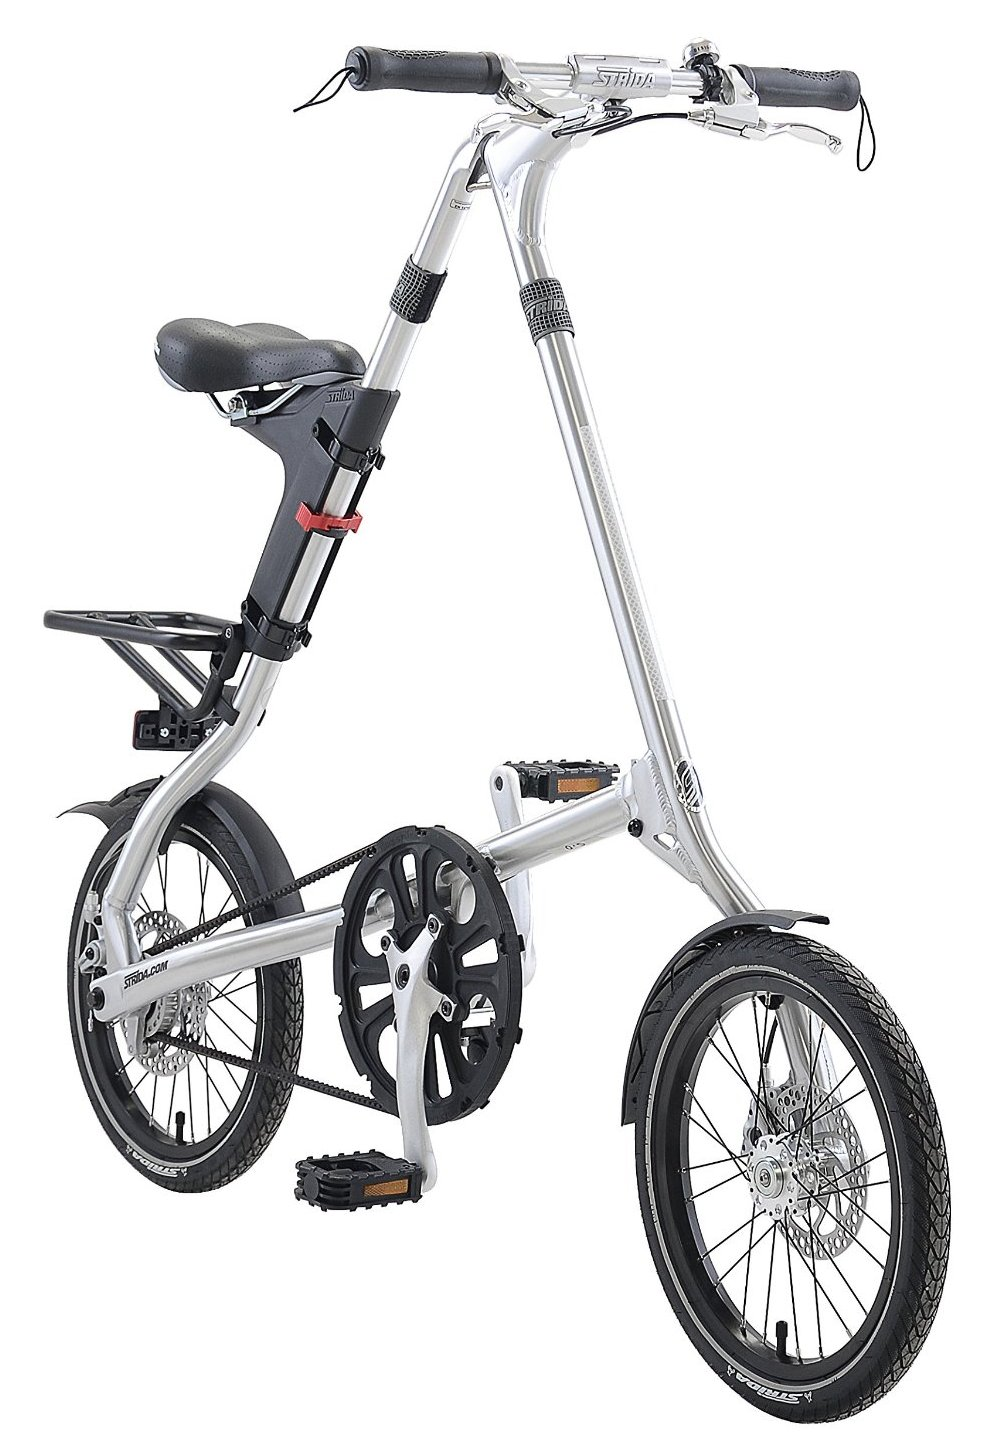 STRiDA 5.0 Silver Folding Urban Single Speed Bike